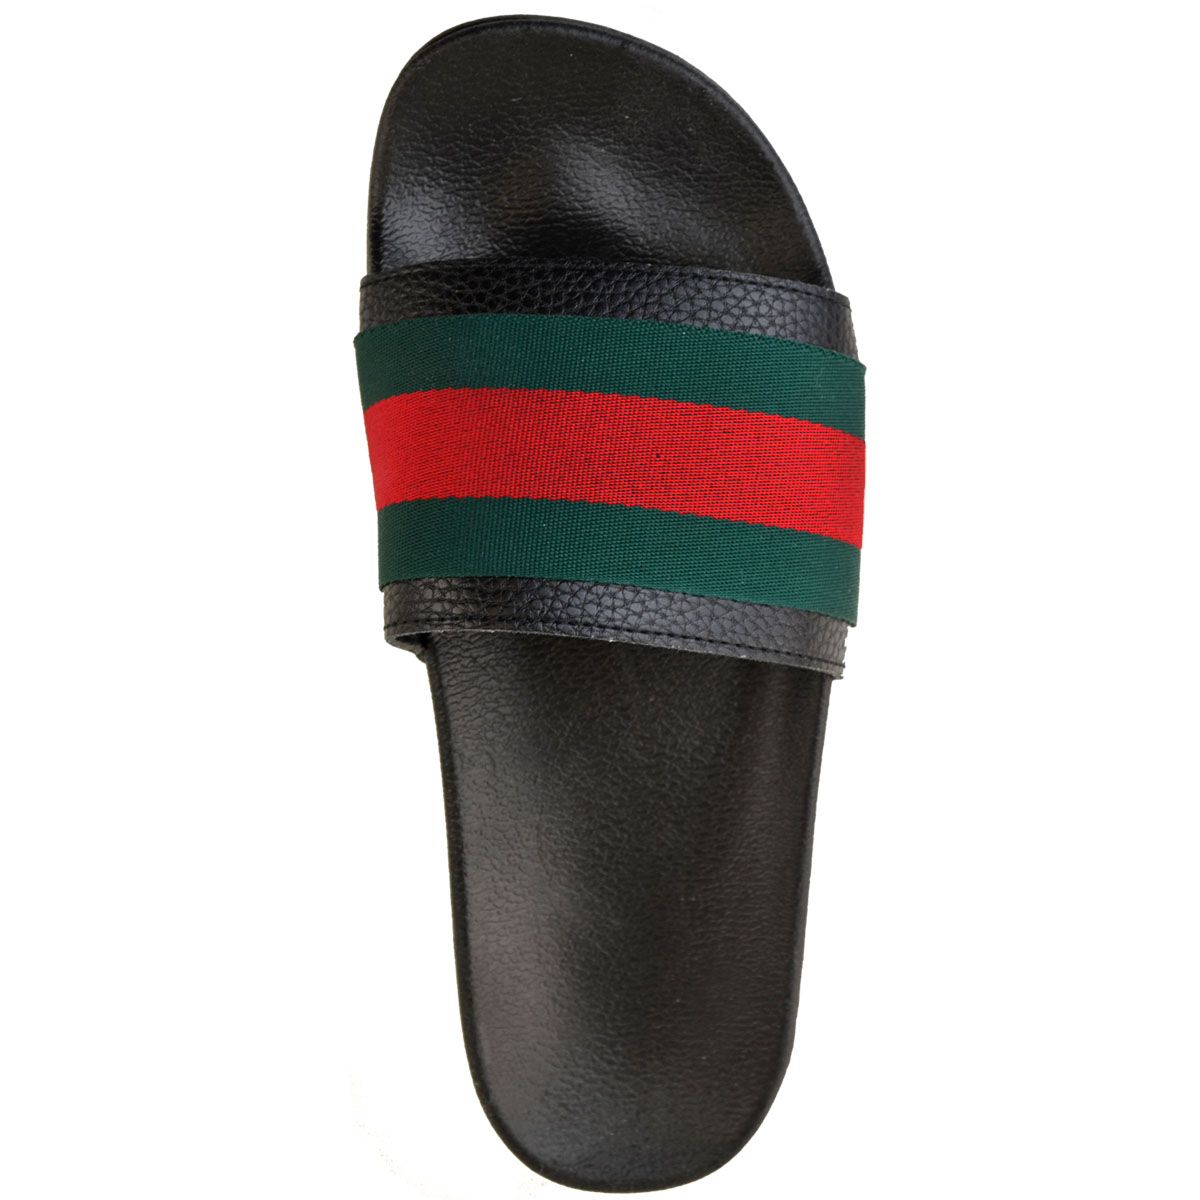 Womens-Ladies-Flat-Striped-Sliders-Summer-Sandals-Slides-Mules-Slippers-Size thumbnail 7